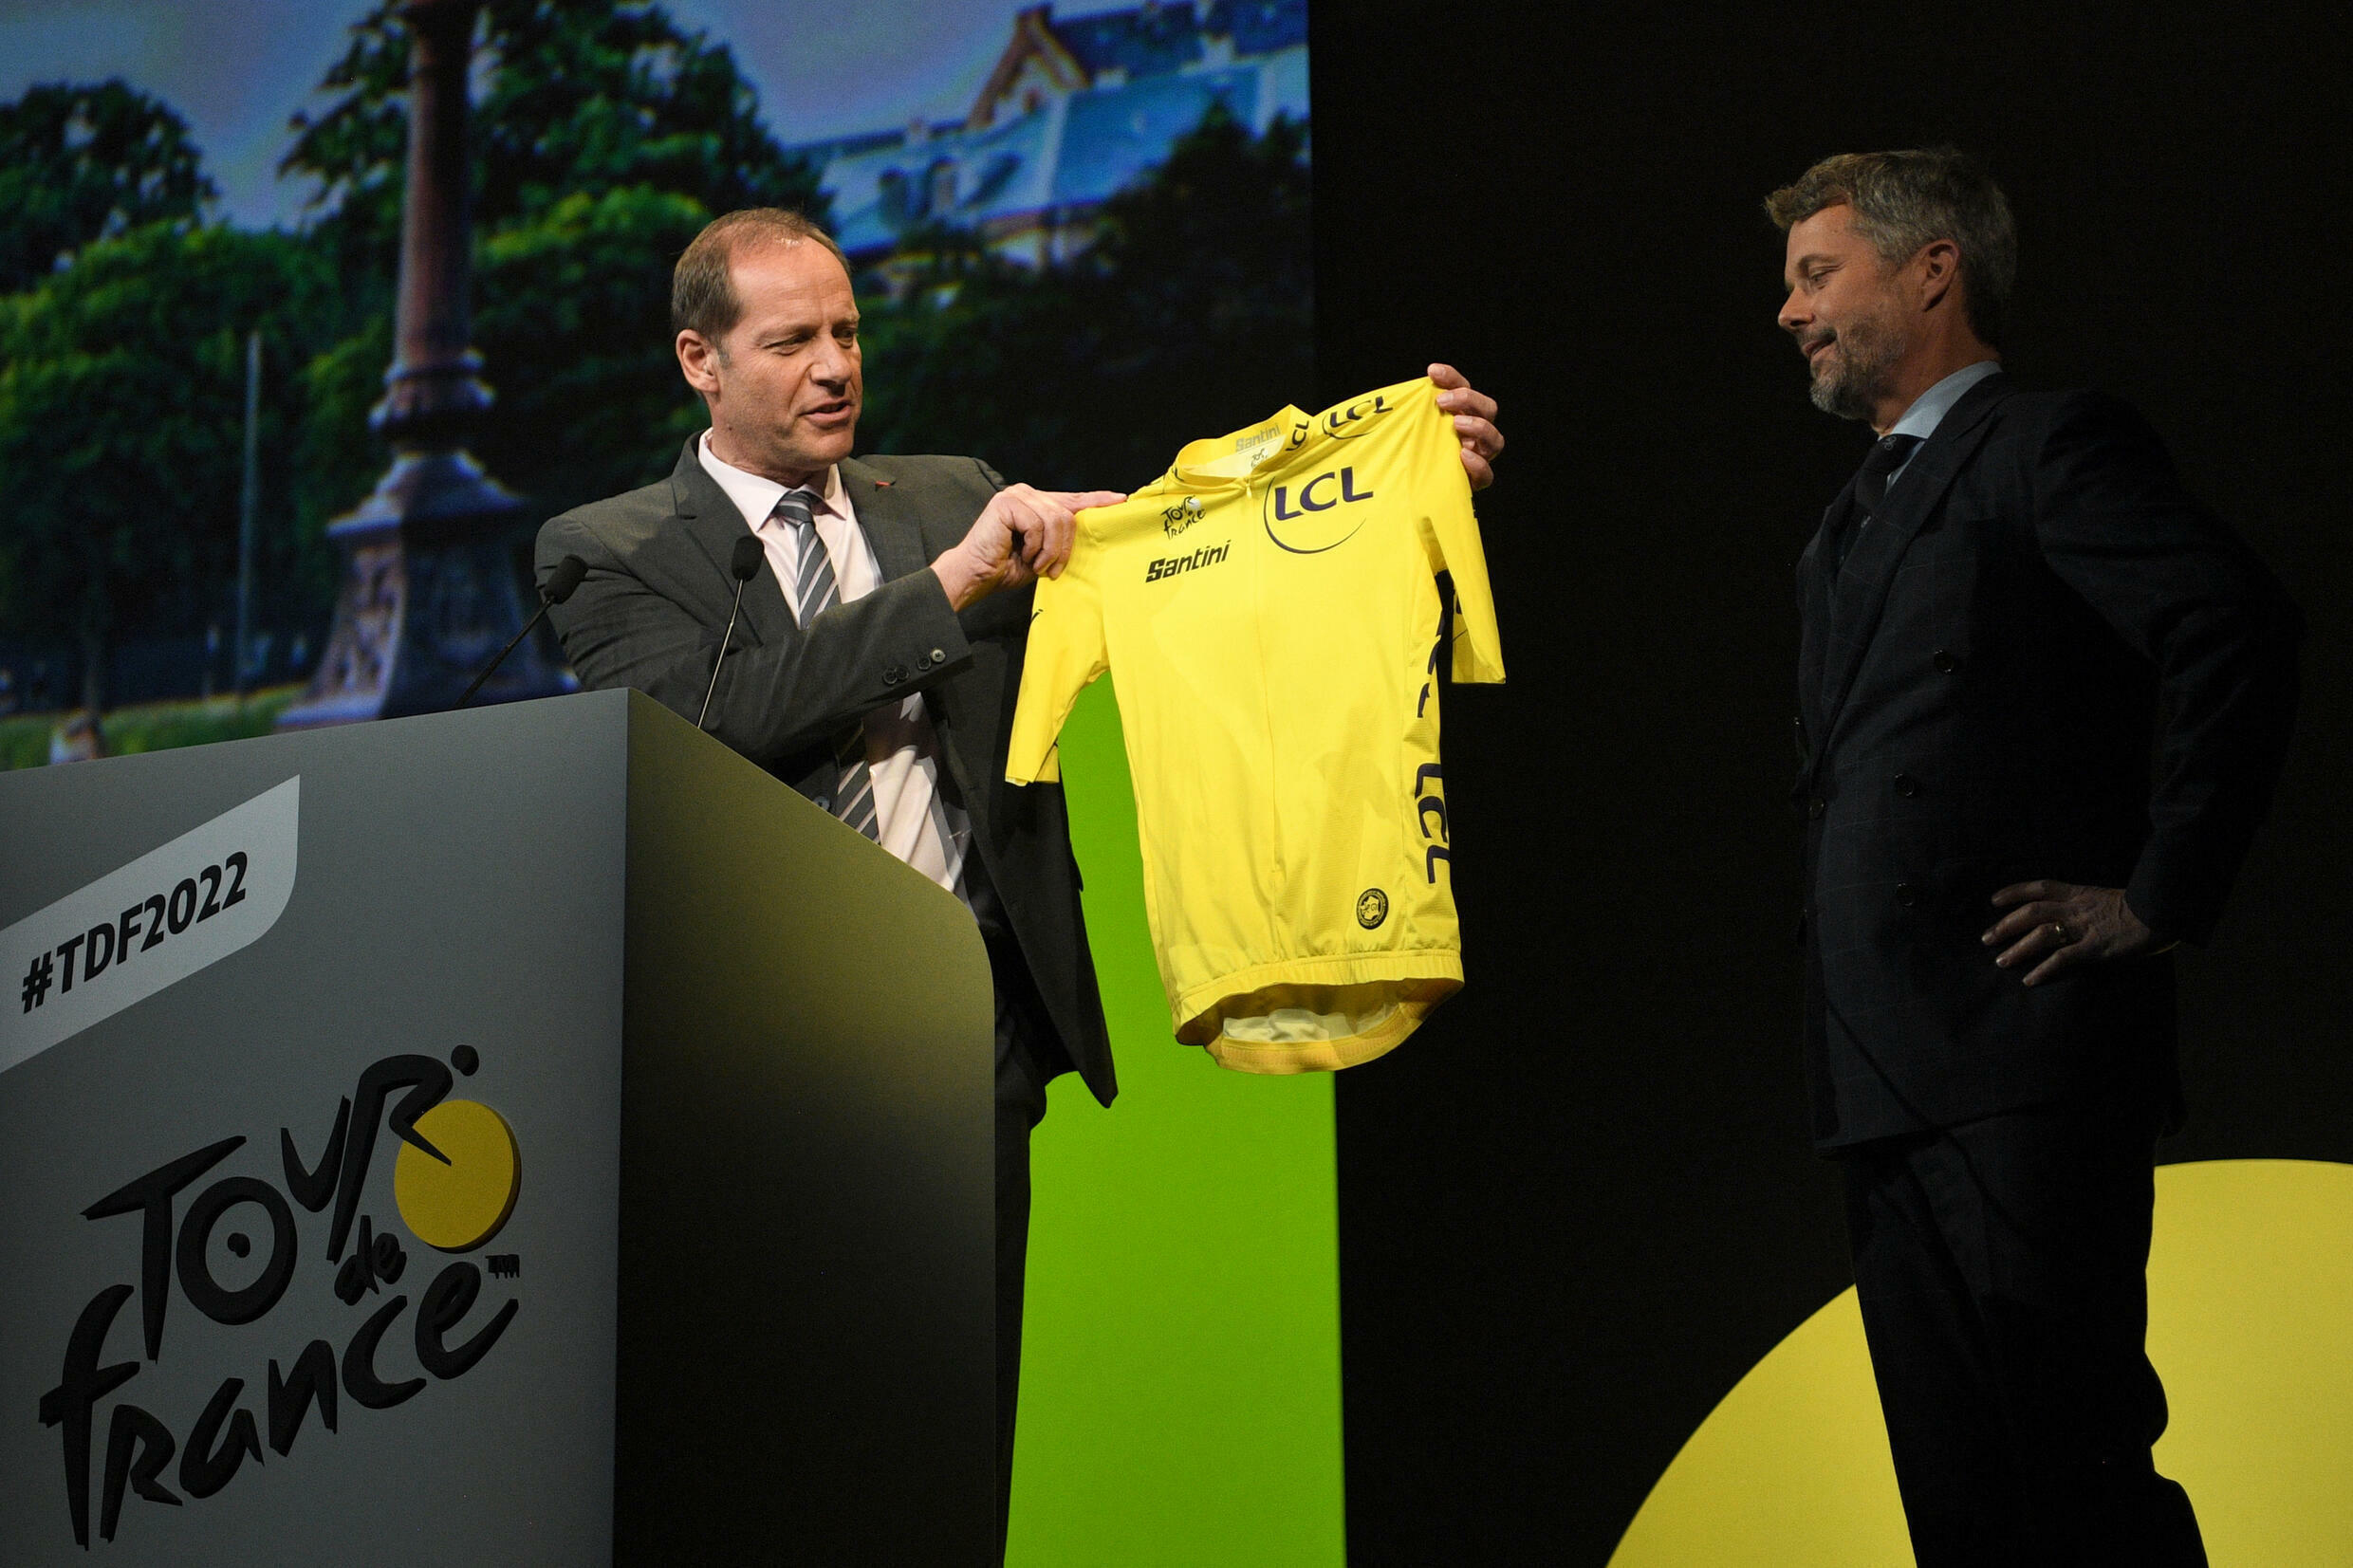 Prince Frederik of Denmark received a yellow jersey from Tour de France director Christian Prudhomme during the presentation of the 2022 men's race